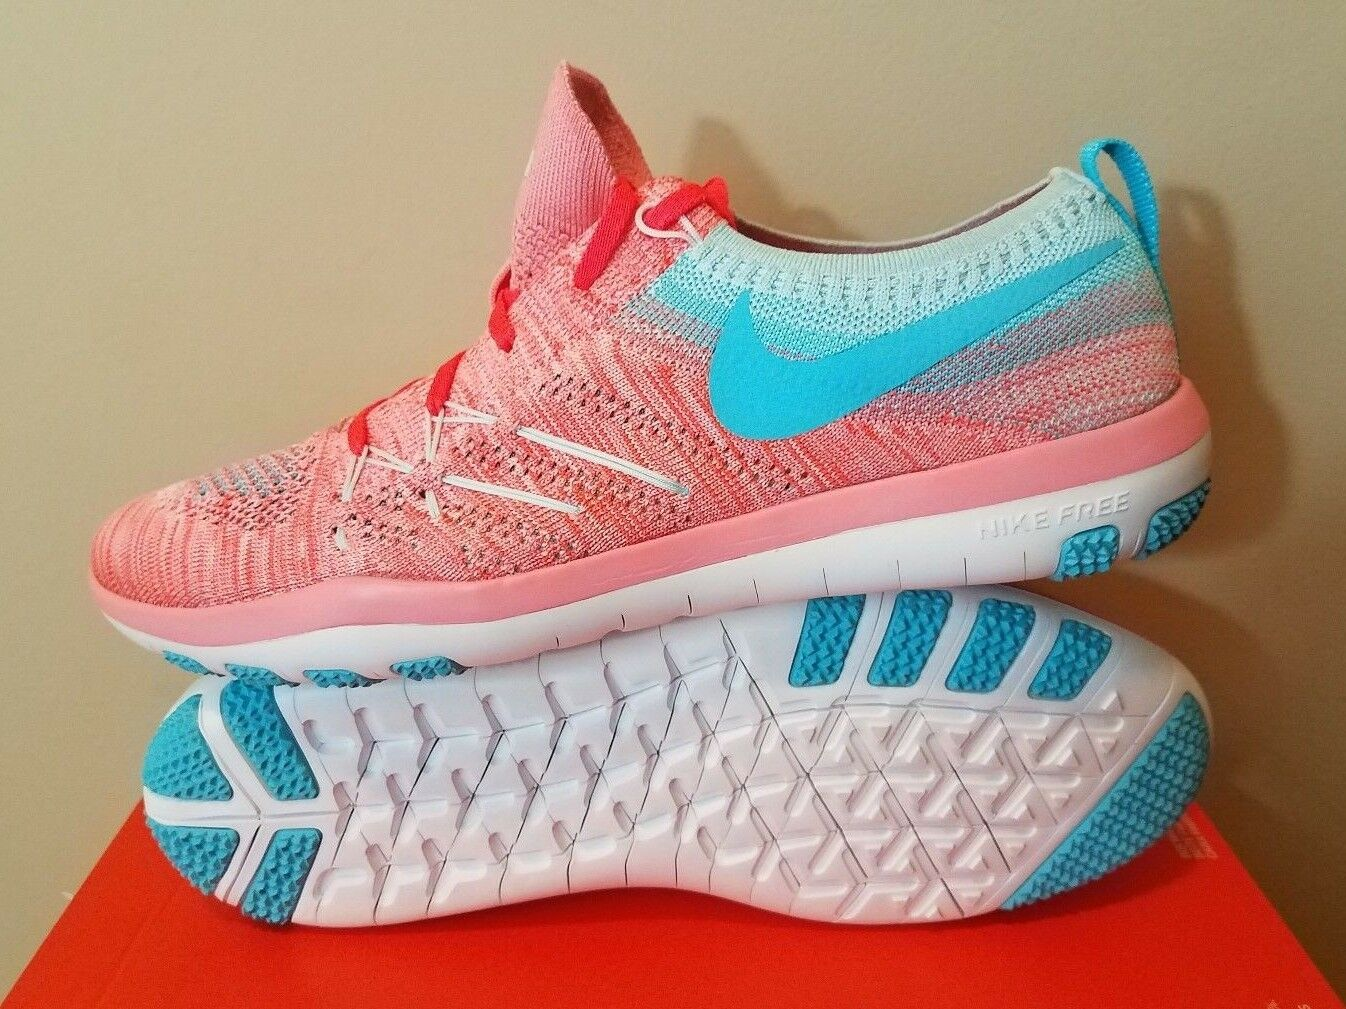 Womens Nike shoes Free Train Focus Flyknit Training Sneakers Running Workout NWT